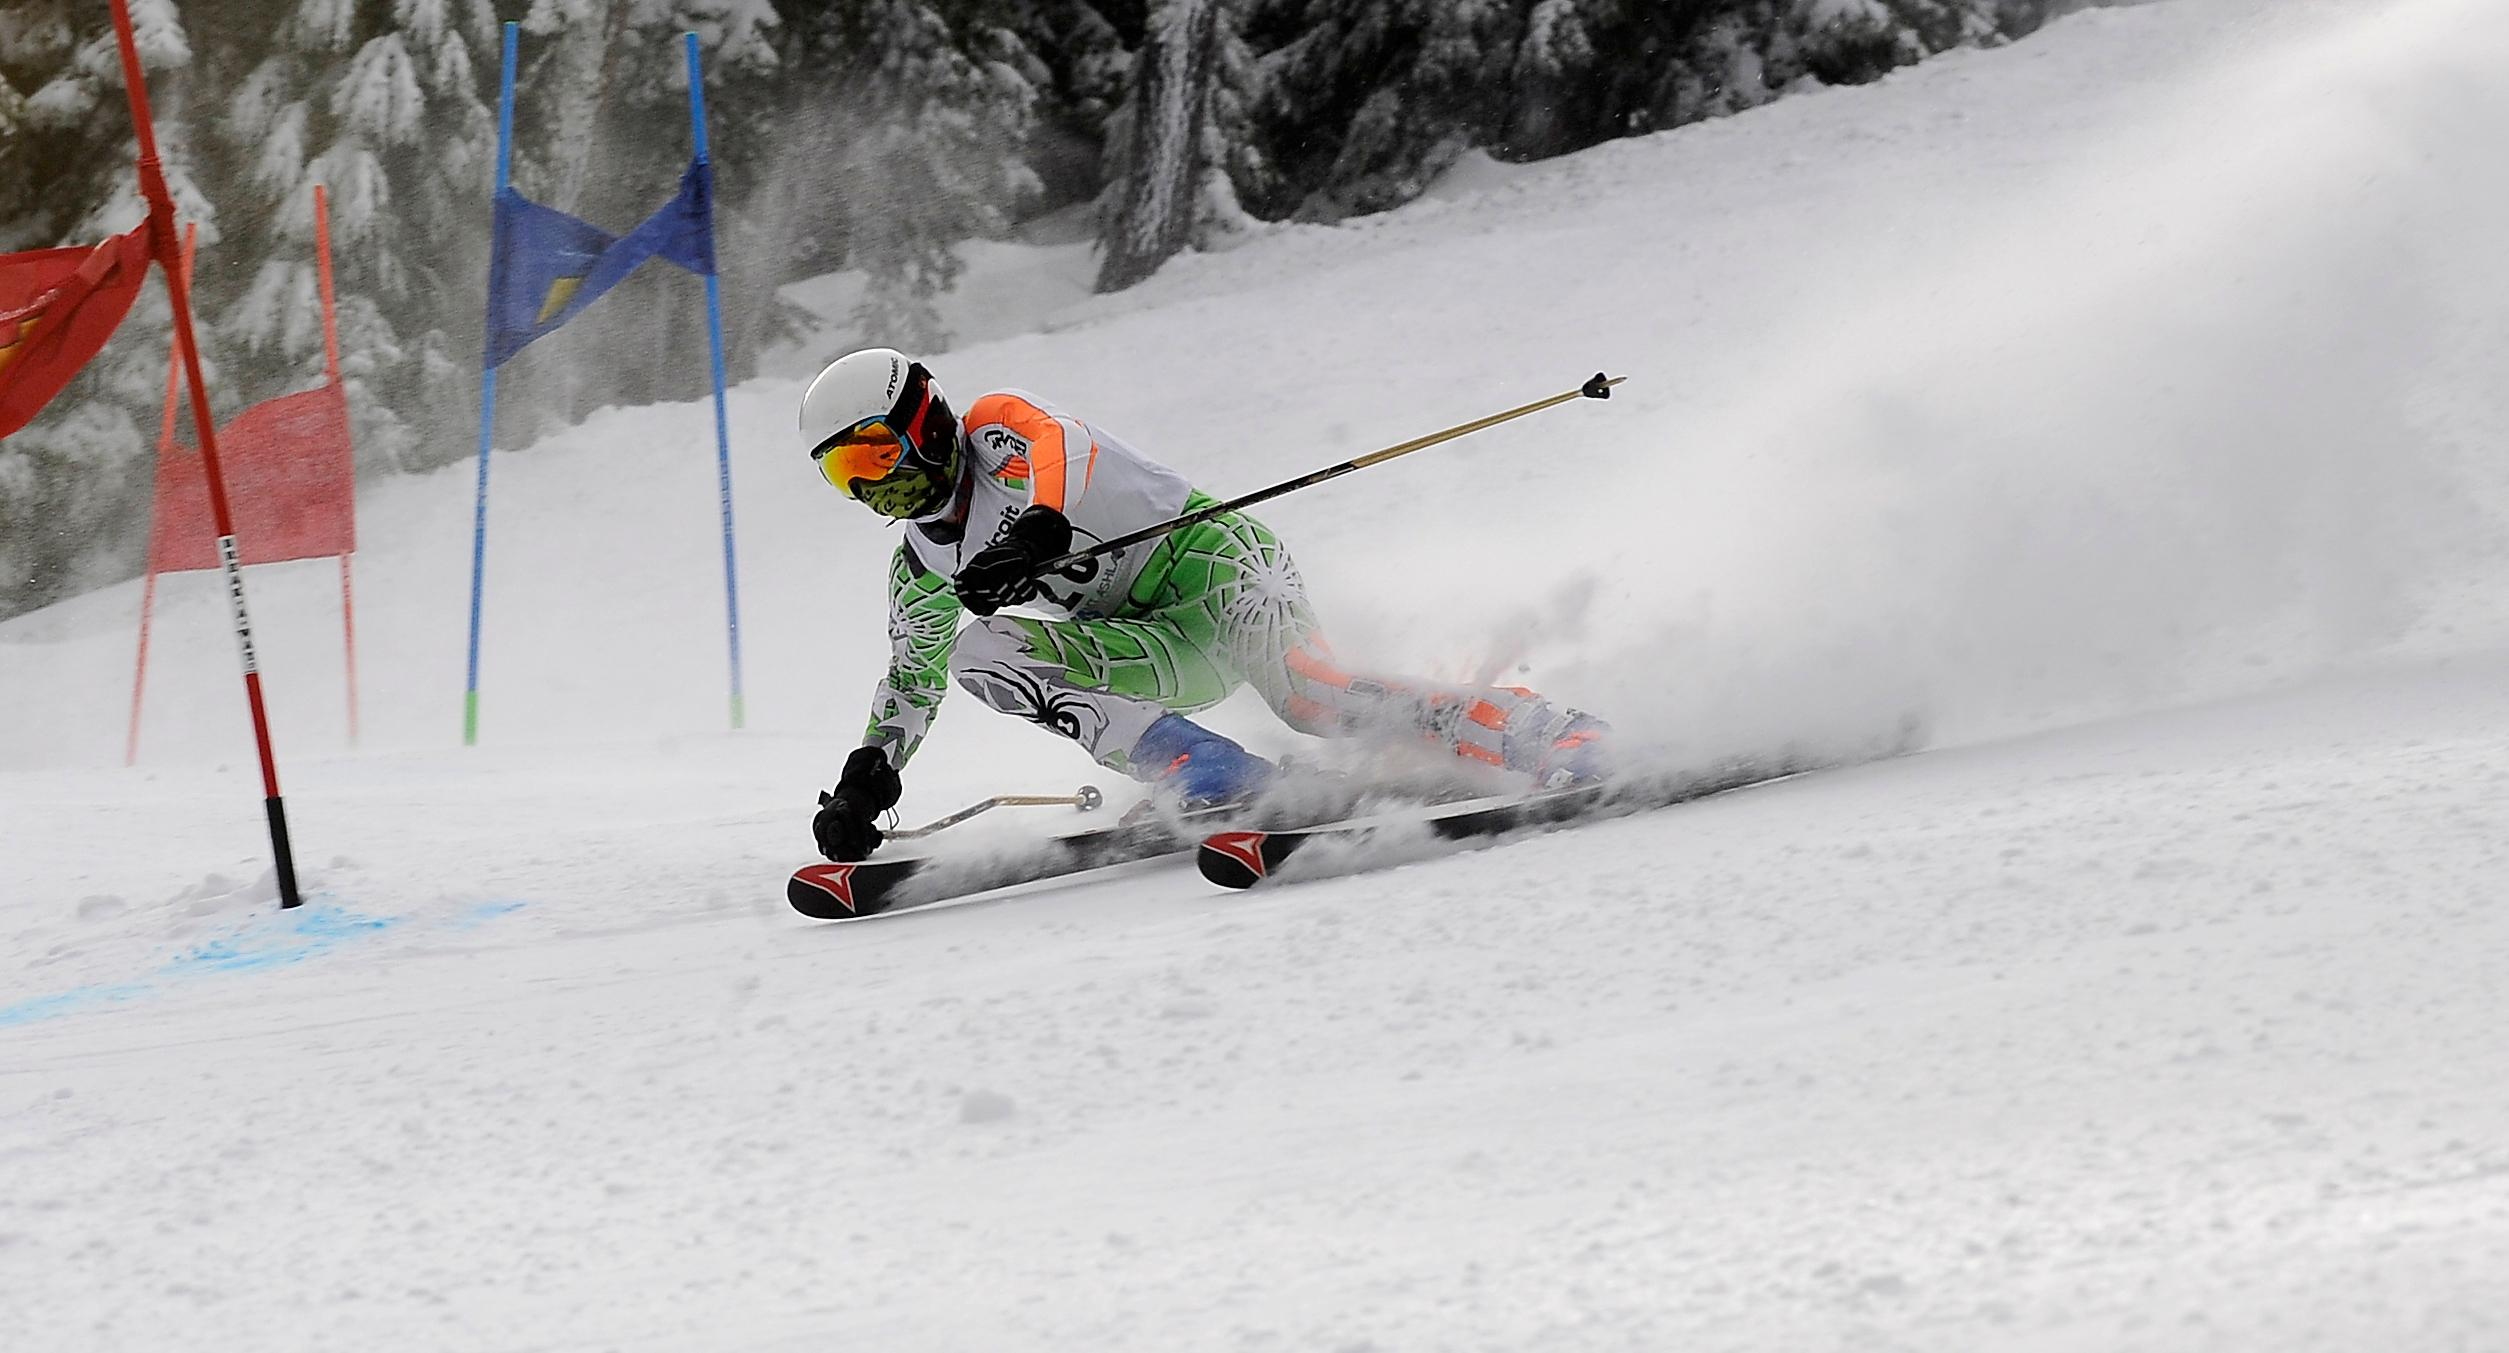 Andy Atkinson / Mail TribuneAshland's Chase Tiffany makes a turn in his 2nd run of the giant slalom winning the event Friday at Mt Ashland.